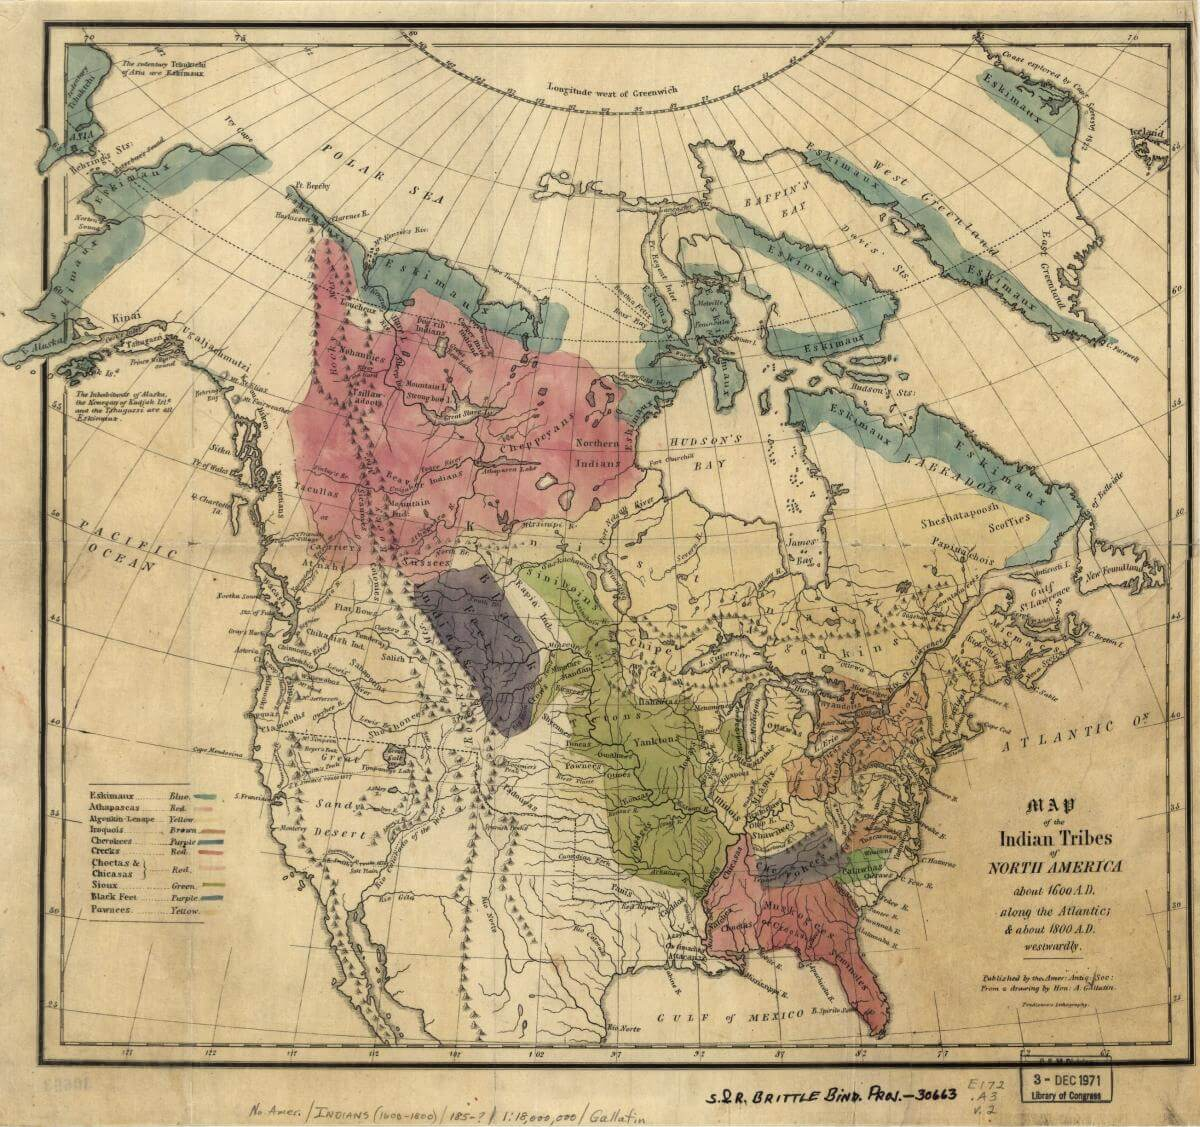 Map of the Indian tribes of North America about 1600 AD, Washington DC, 1836. Map by Albert Gallatin. Courtesy of the Library of Congress Geography and Map Division, loc.gov/resource/g3301e.ct000669/.